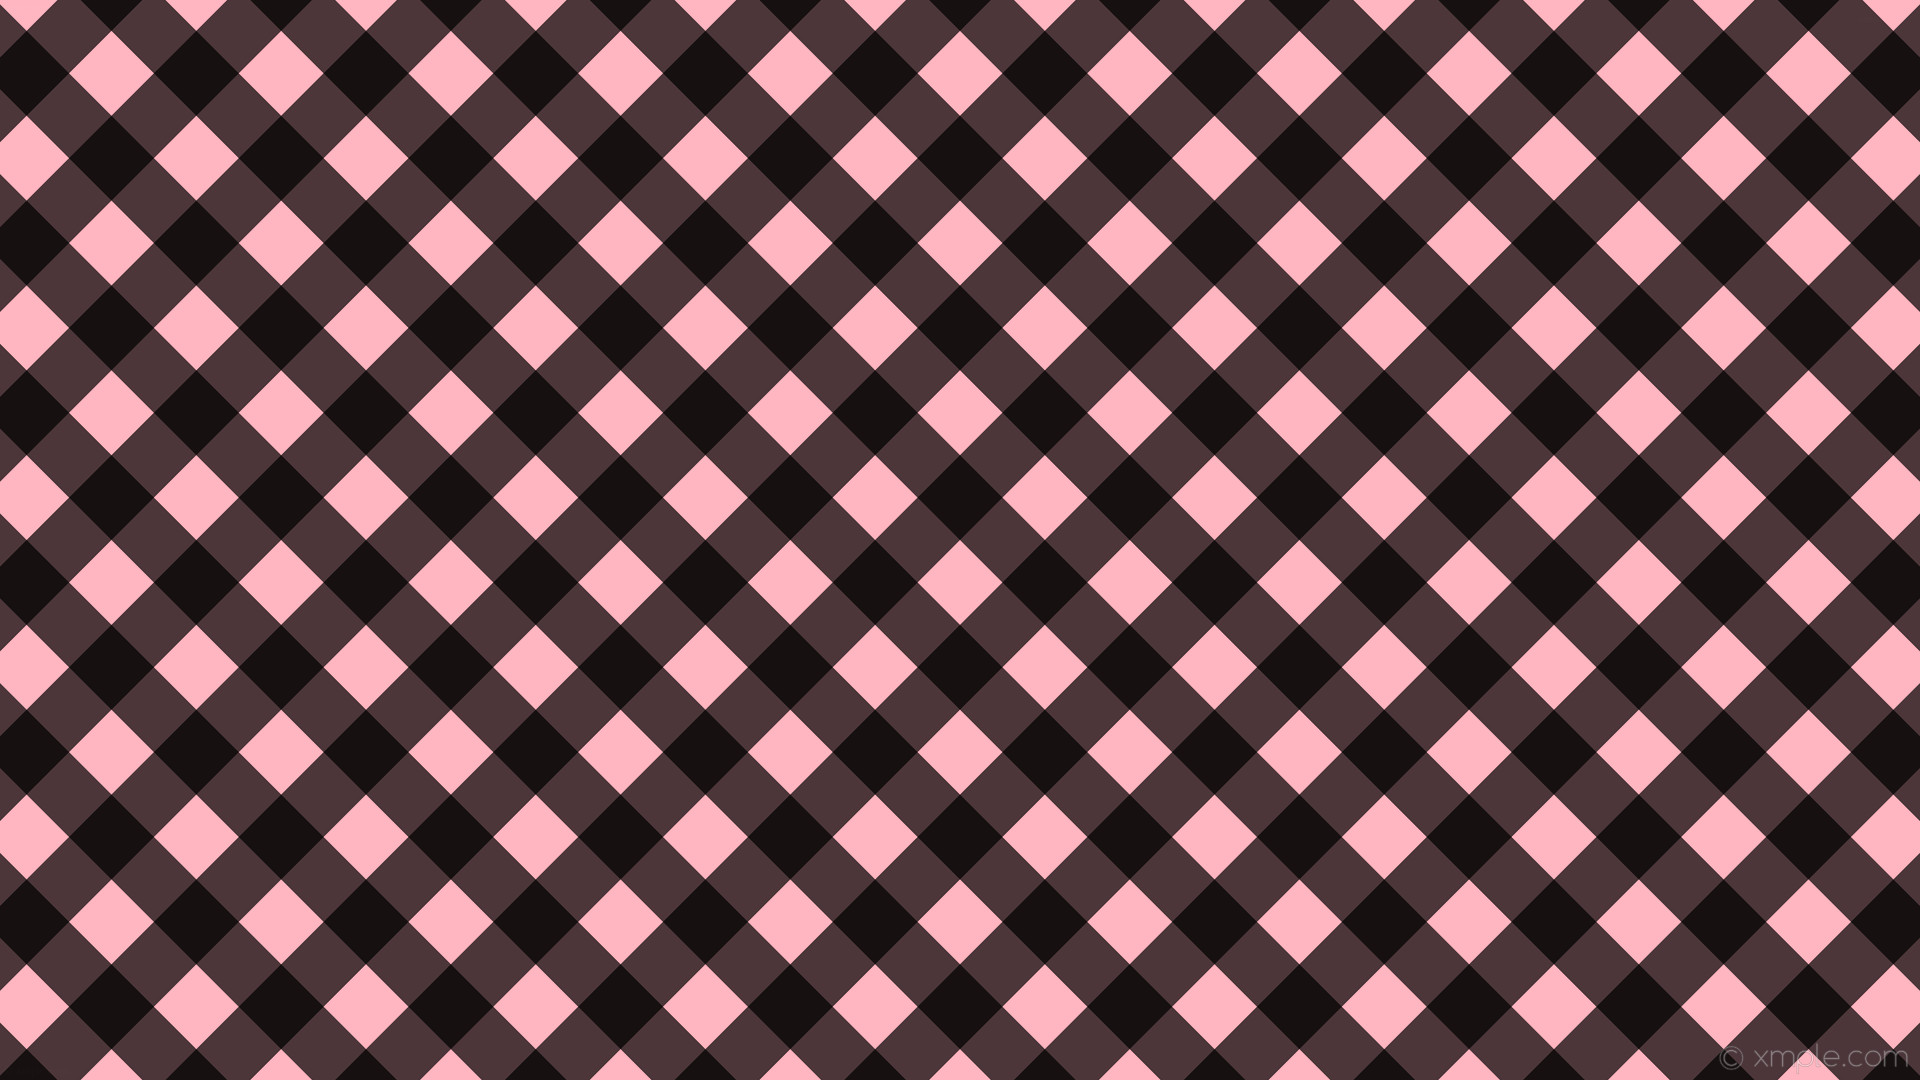 wallpaper pink gingham striped checker black light pink #ffb6c1 #000000  135° 60px